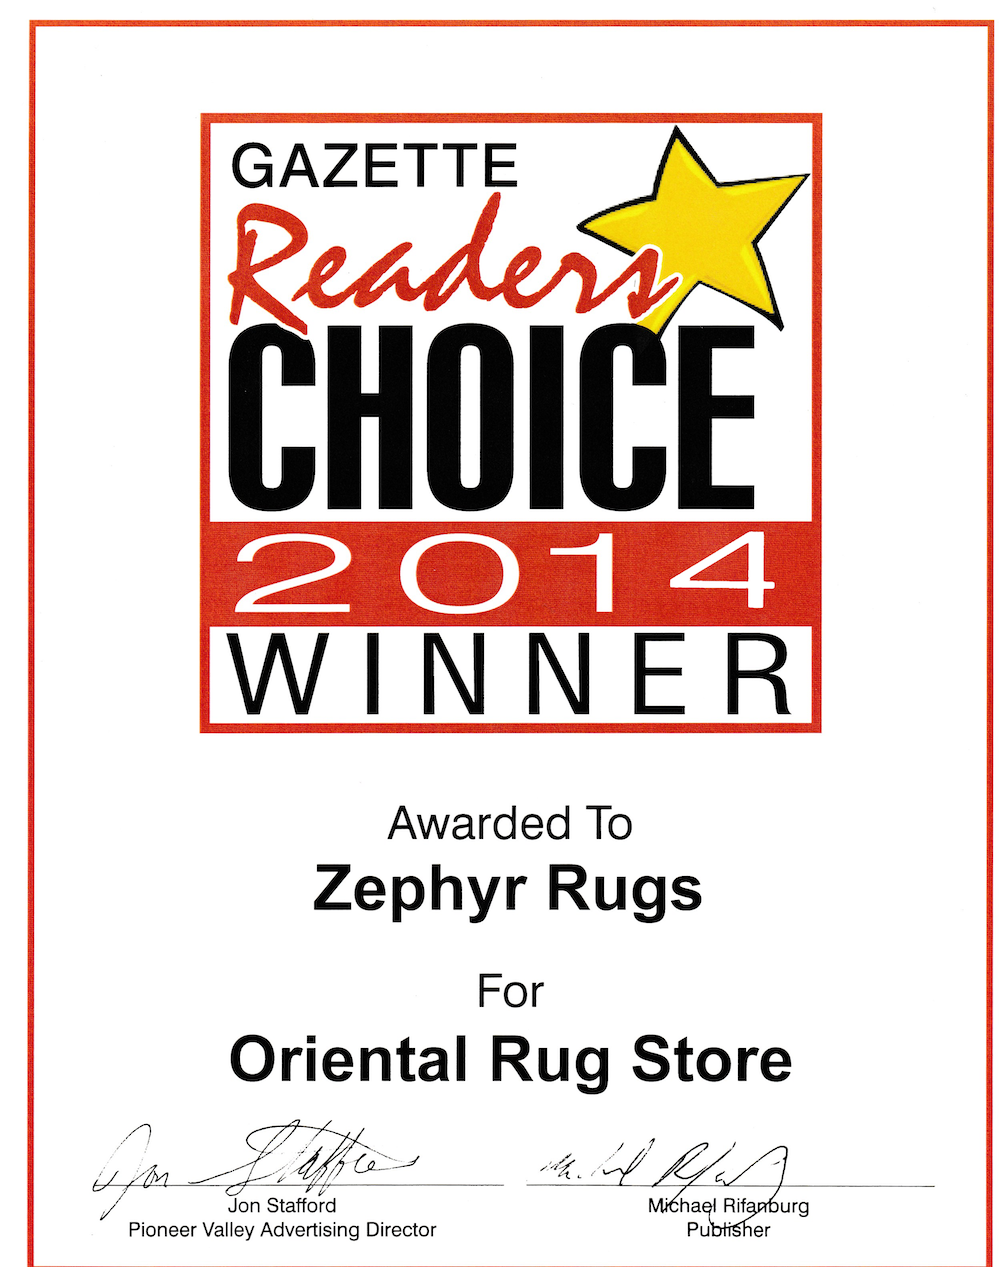 Zephyr Rugs Voted Best Oriental Rug Store by Hampshire Gazette Reader's Choice 2014